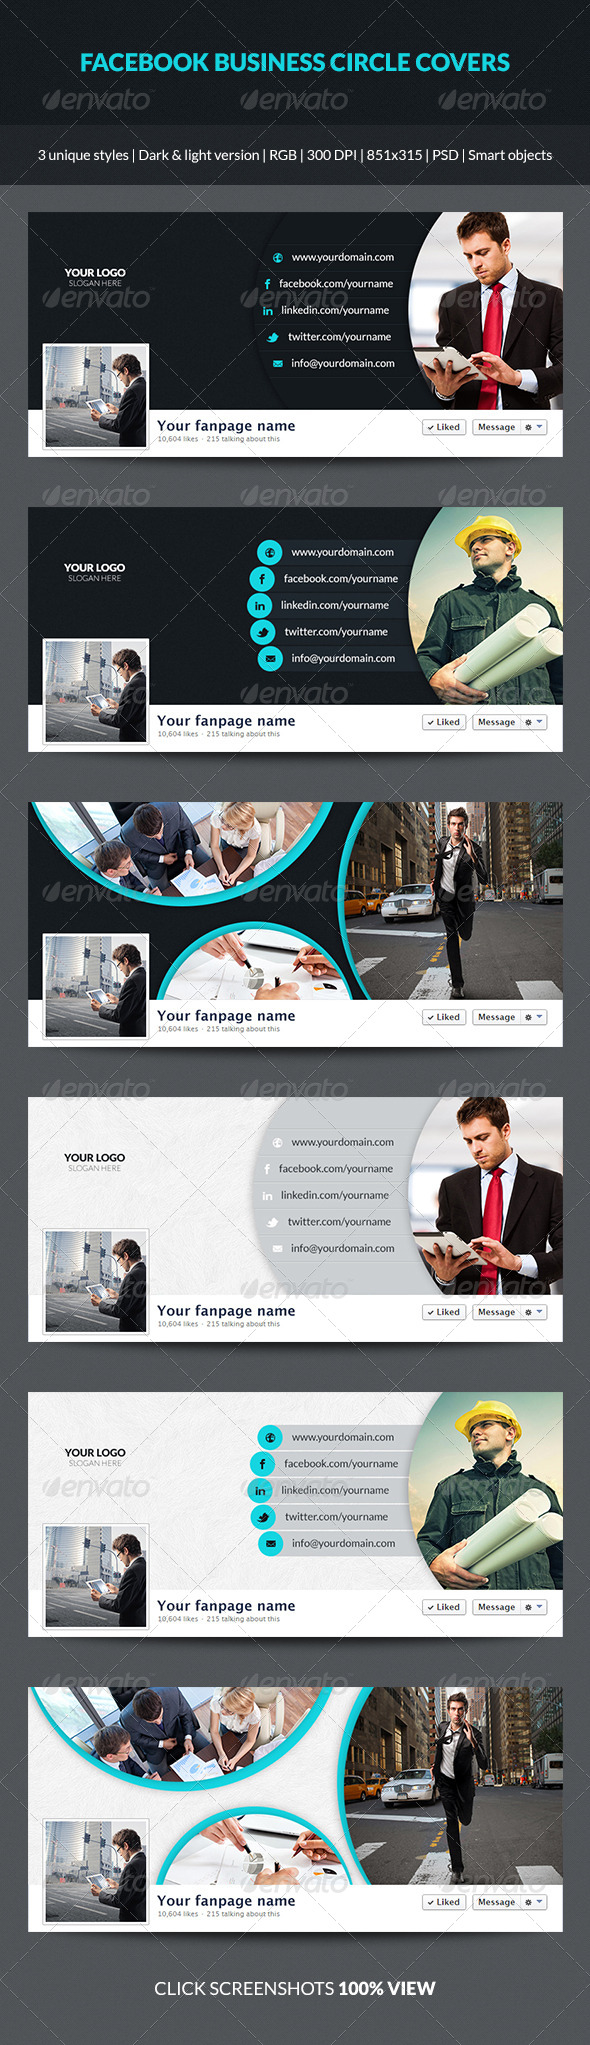 GraphicRiver Facebook Business Circle Covers 7333047